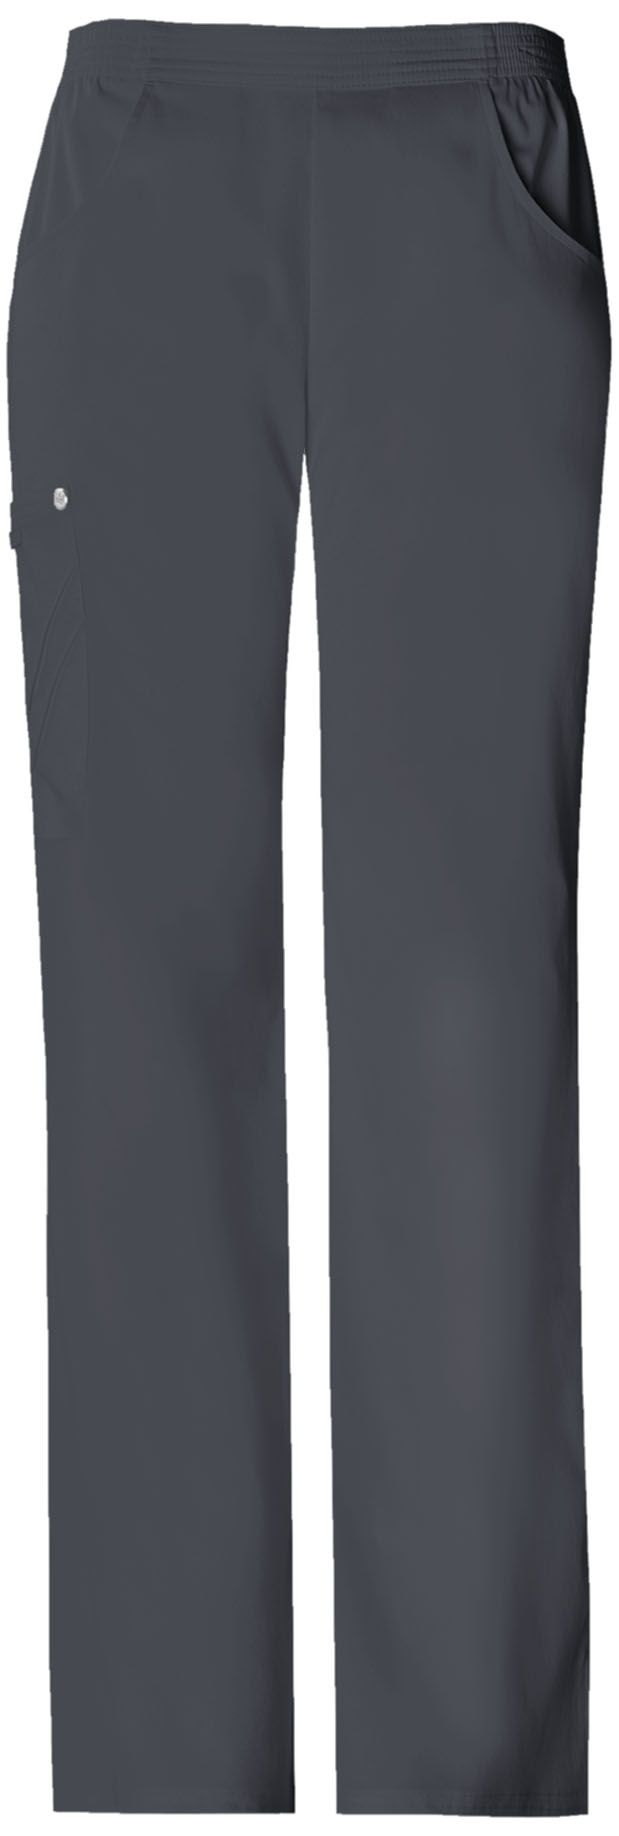 This Cherokee scrub pant is a flattering, mid-rise pull on! Find it at The Uniform Outlet!